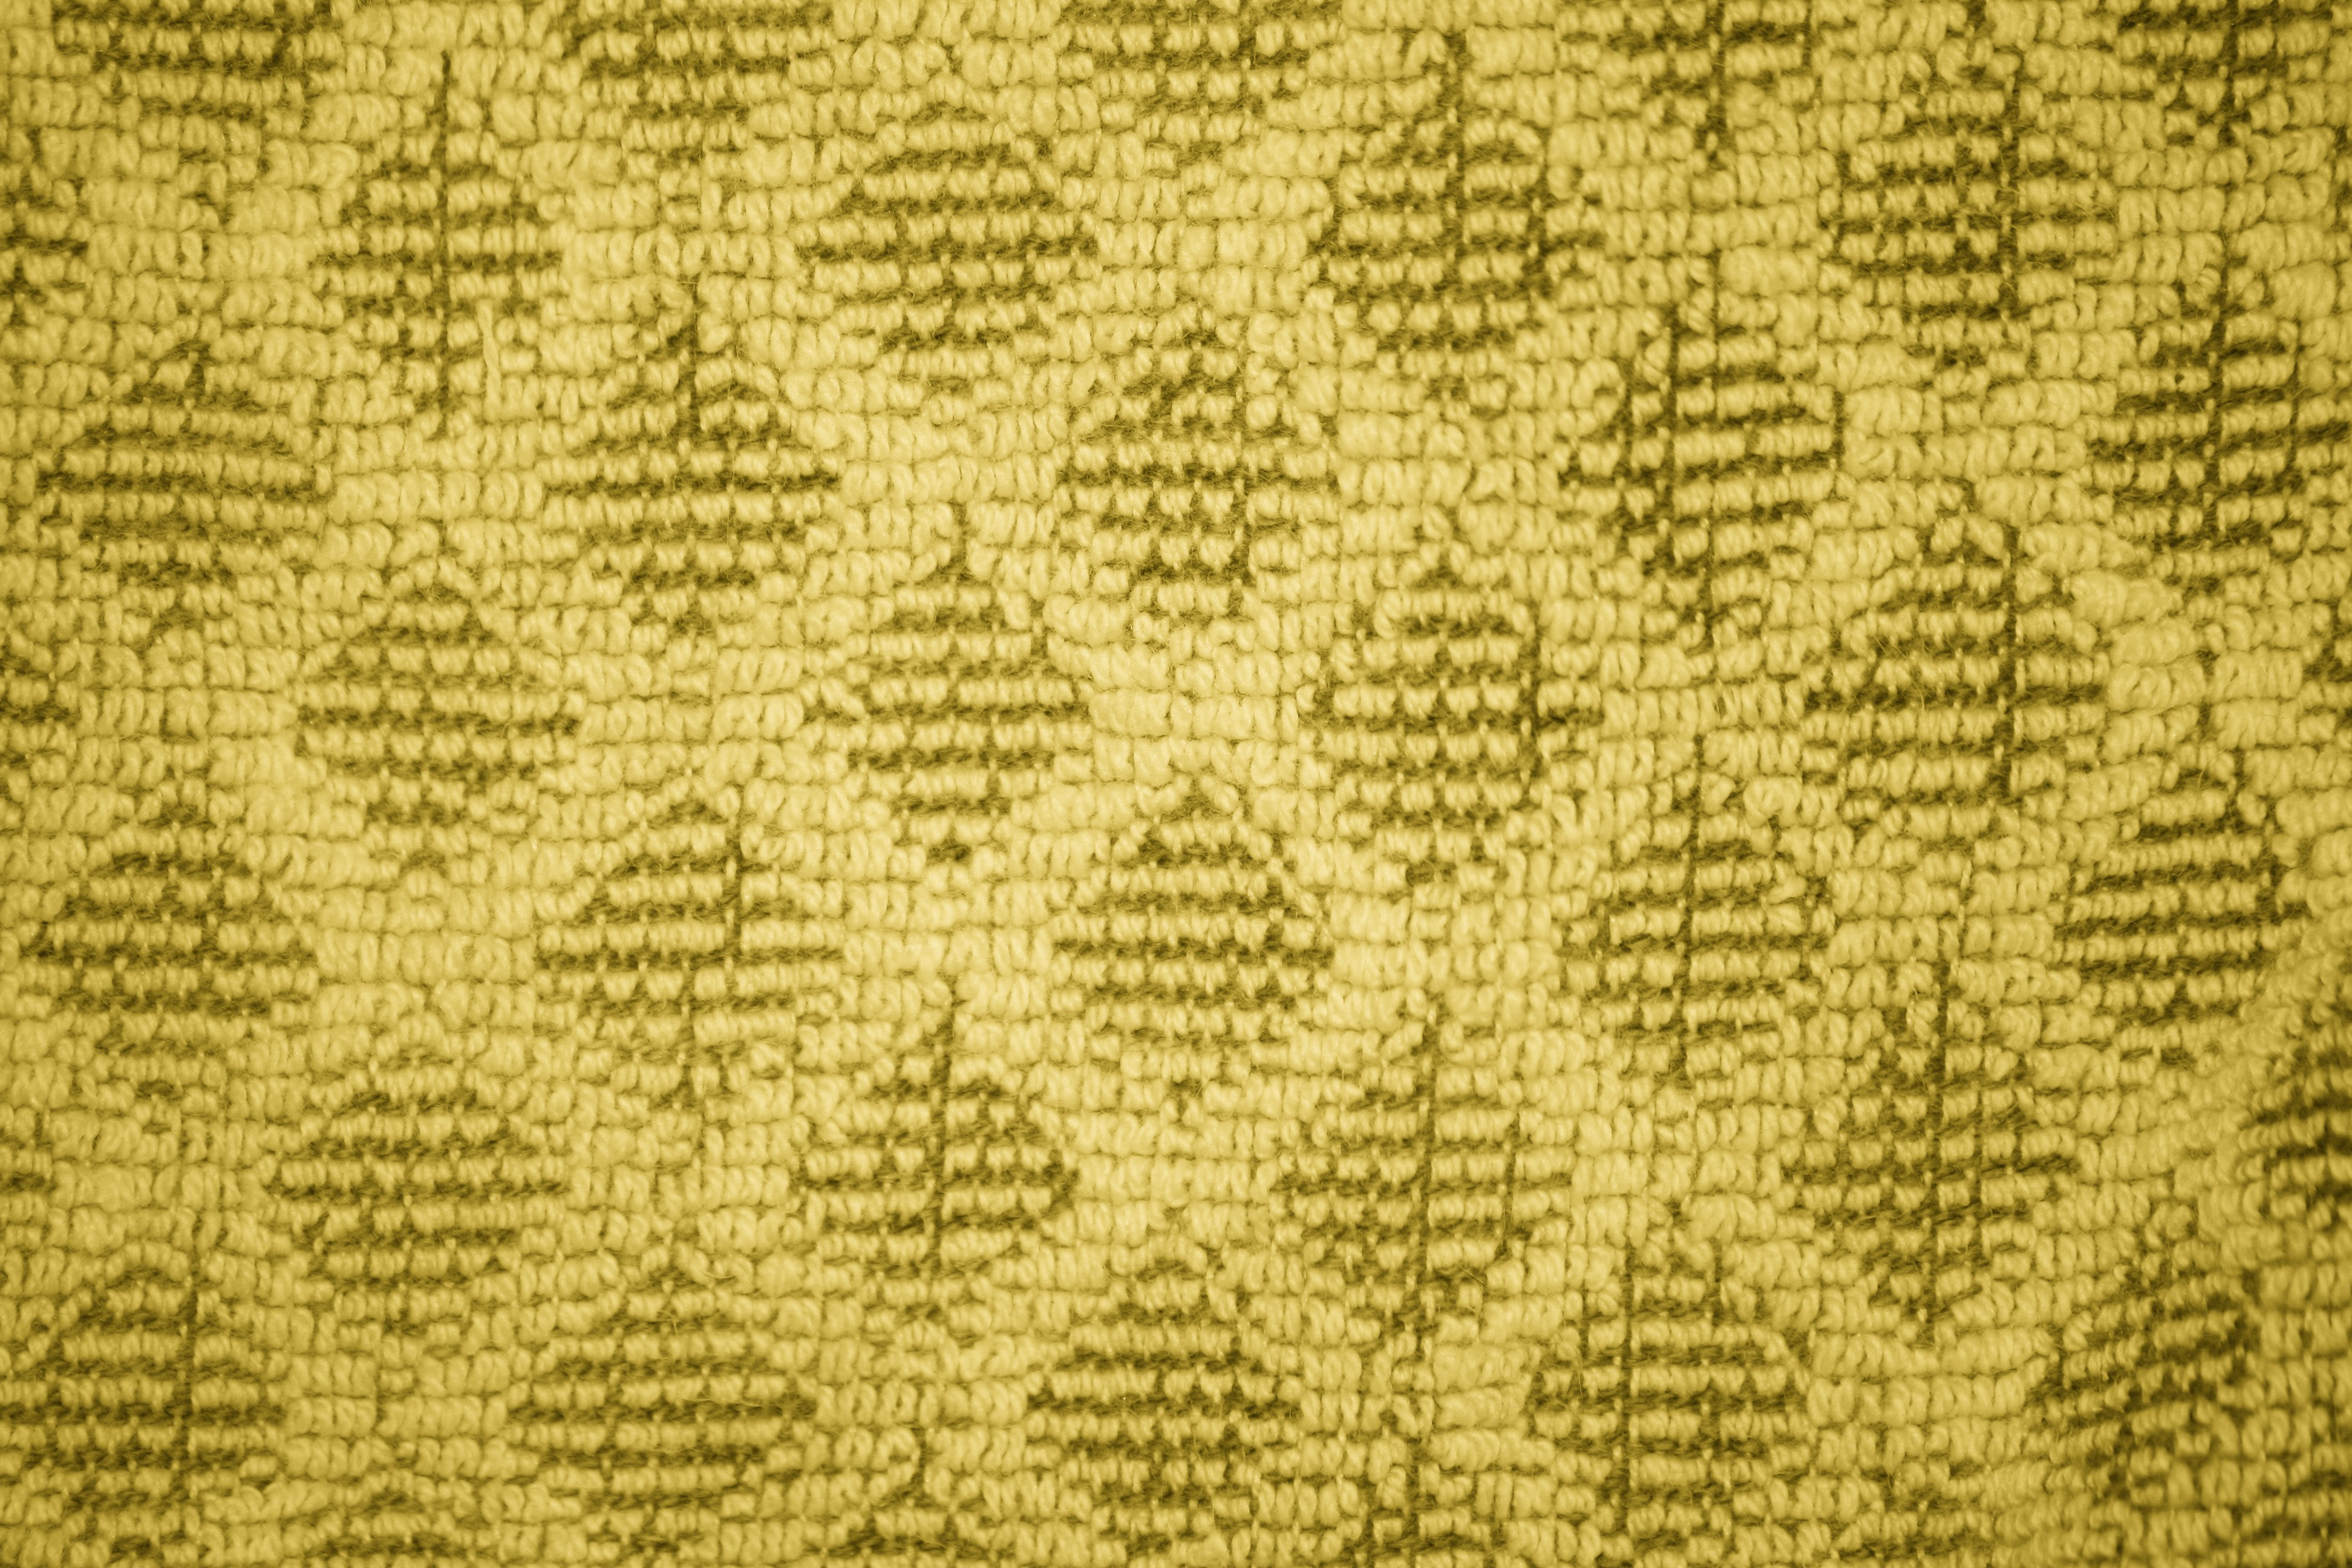 Gold Dish Towel with Diamond Pattern Close Up Texture Picture | Free ...